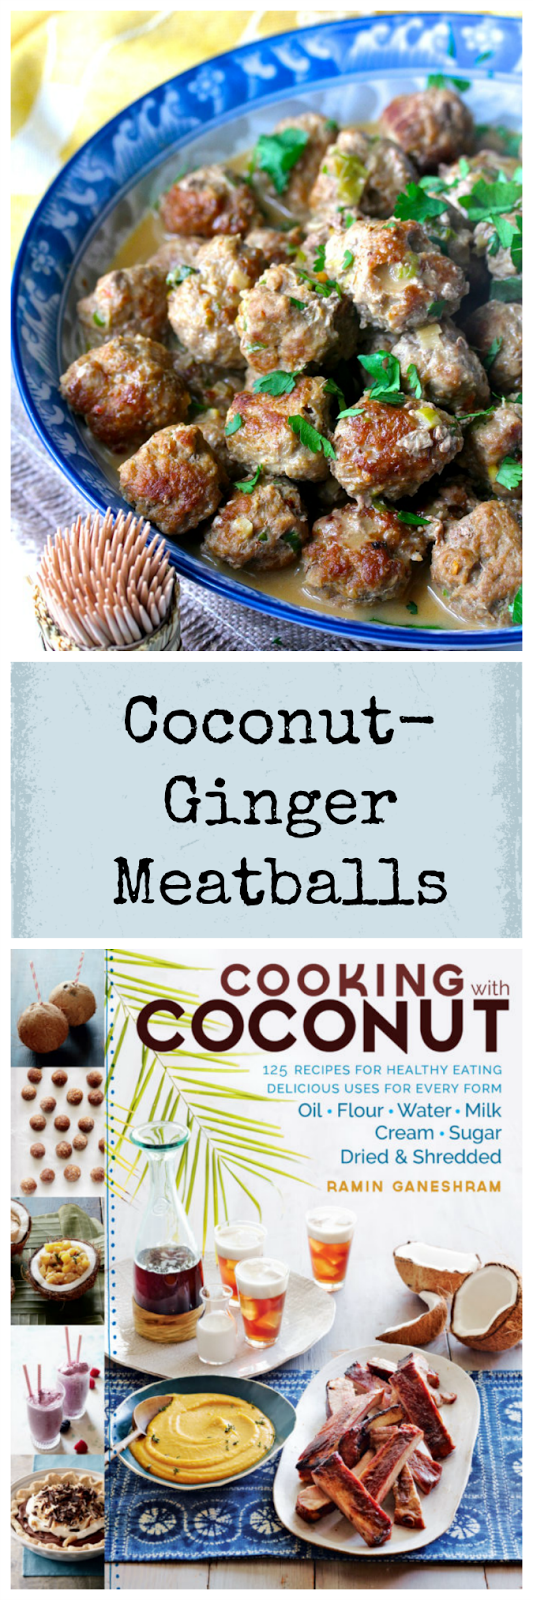 Coconut-Ginger Meatballs